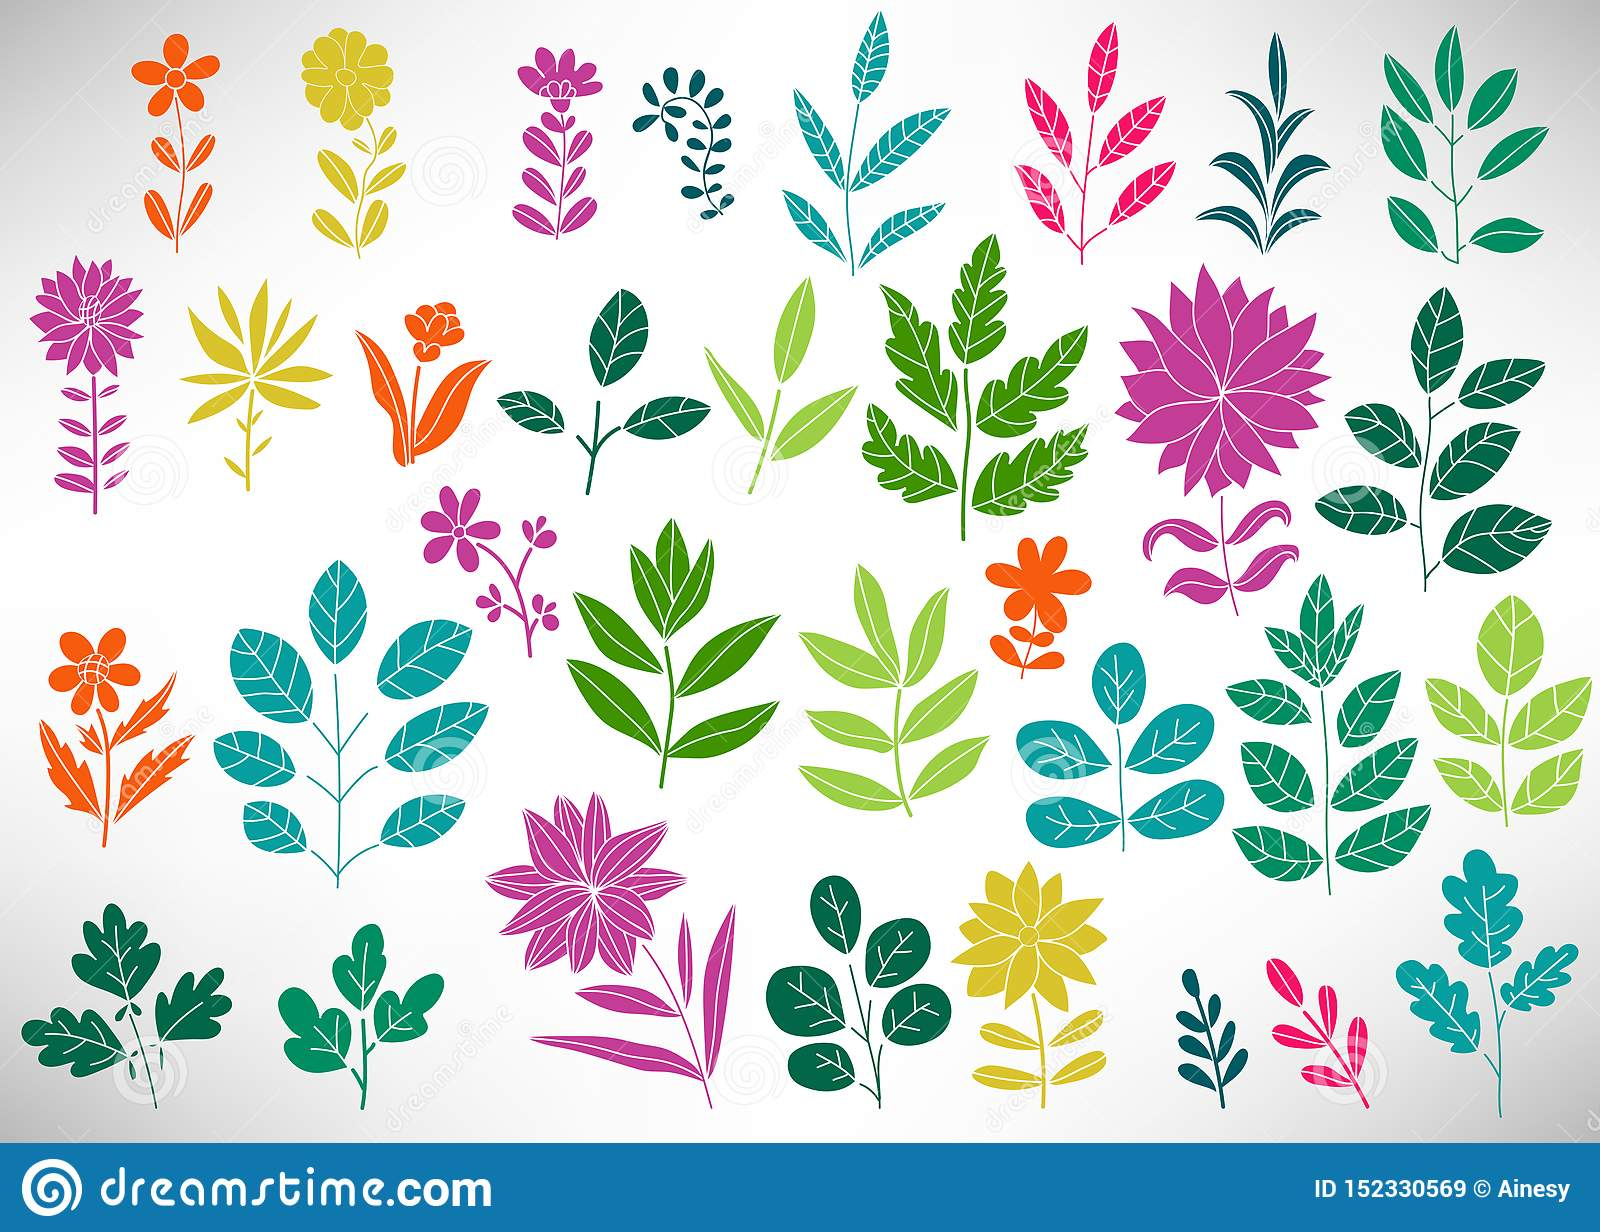 Floral Set of colorful doodle elements, tree branch, bush, plant, leaves, flowers, branches petals isolated on white.